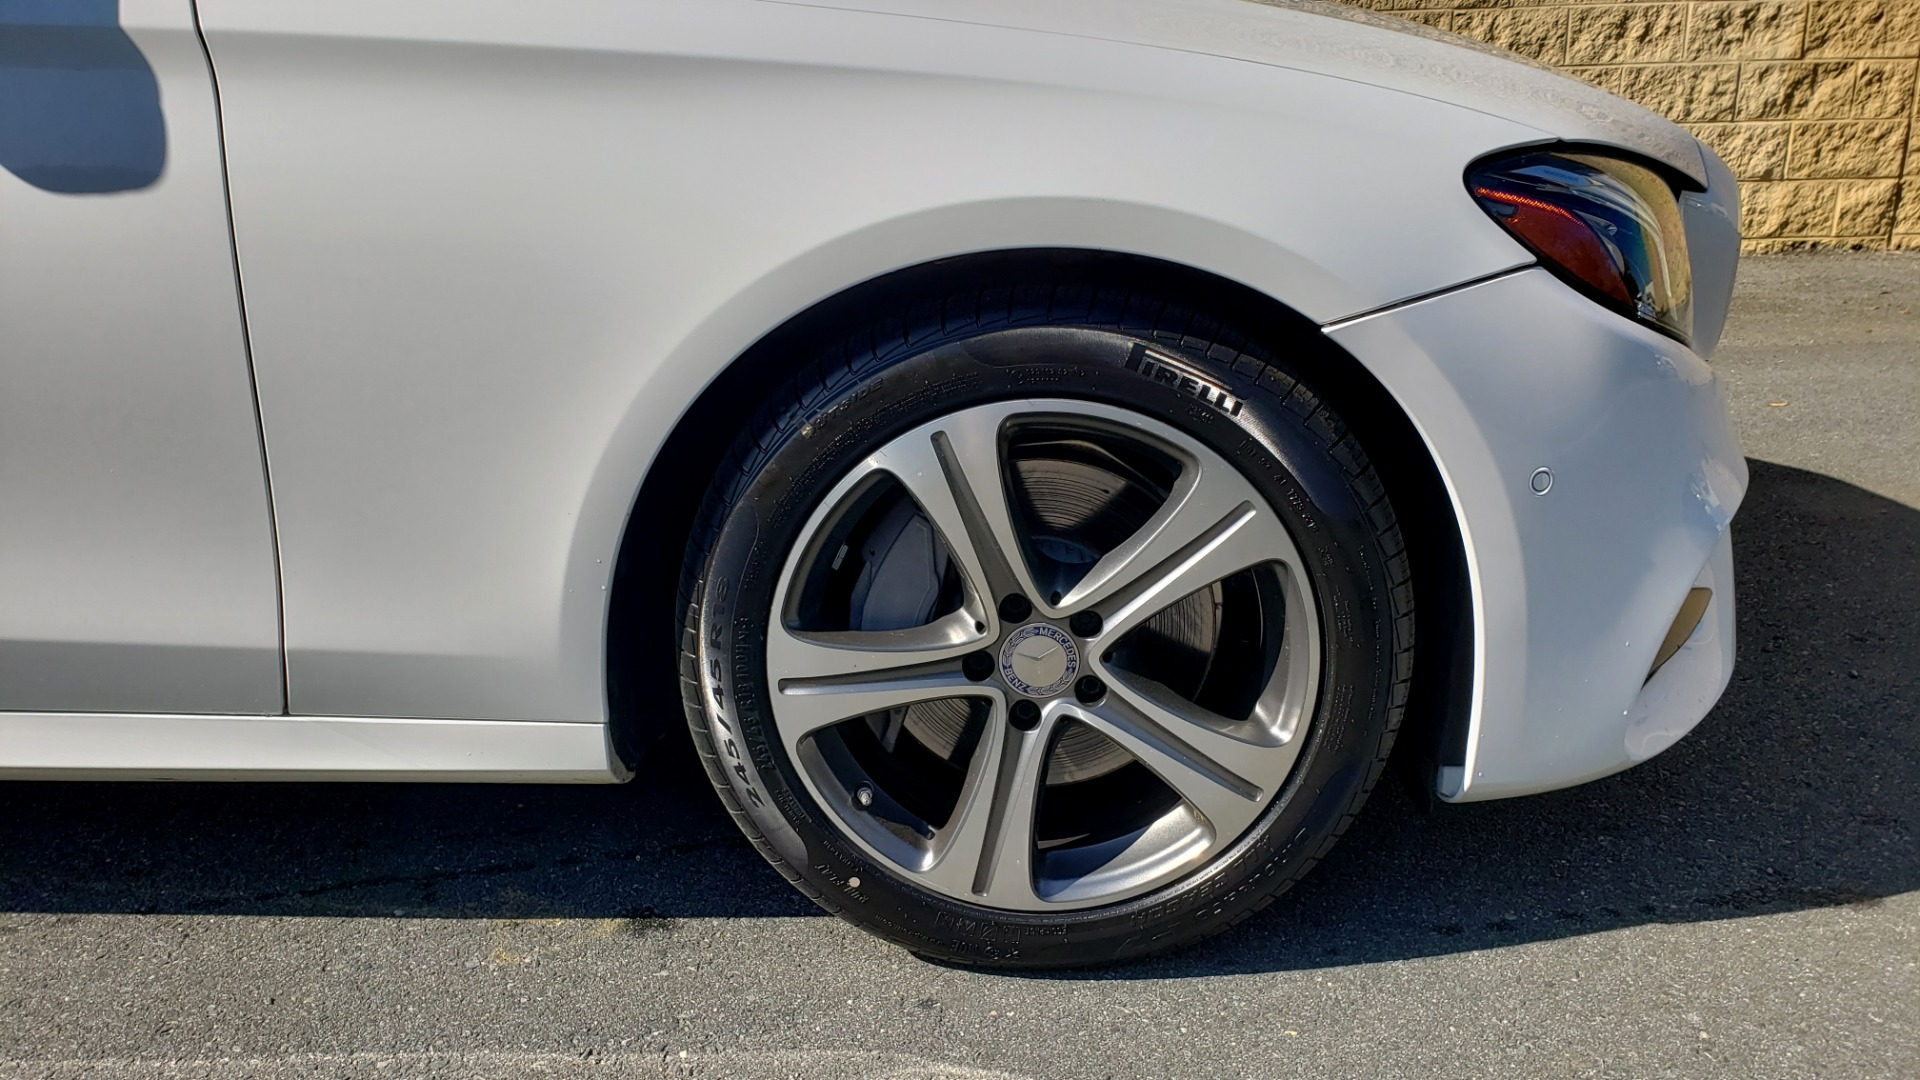 Used 2017 Mercedes-Benz E-Class E 300 PREMIUM / RWD / NAV / SNF / PARKING PILOT / REARVIEW / BURMESTER for sale Sold at Formula Imports in Charlotte NC 28227 73